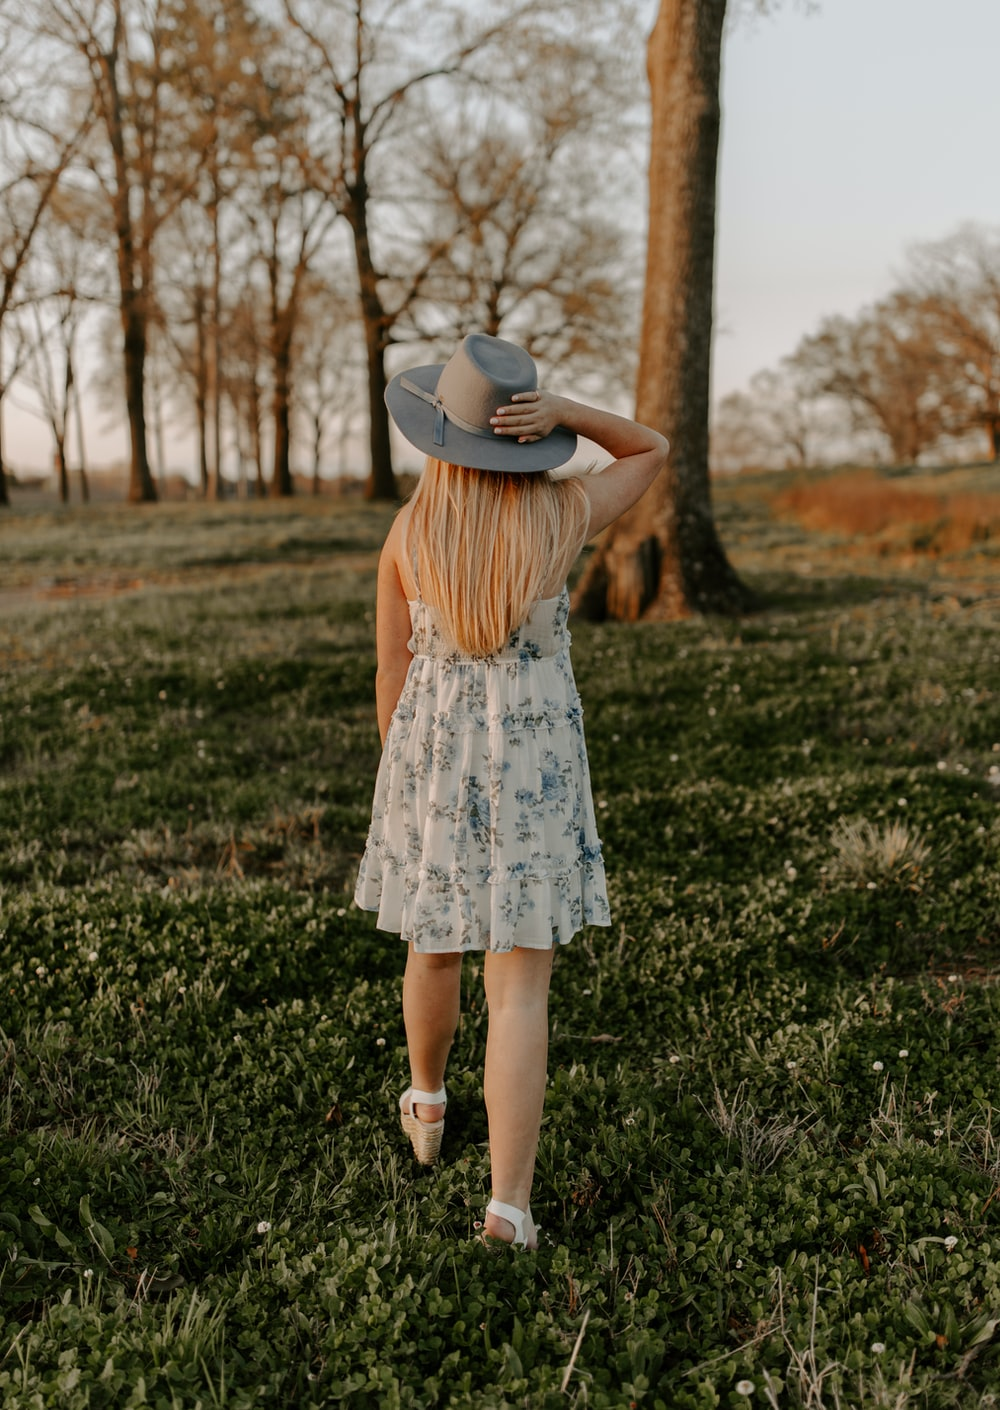 woman in white and blue floral dress wearing brown hat standing on green grass field during